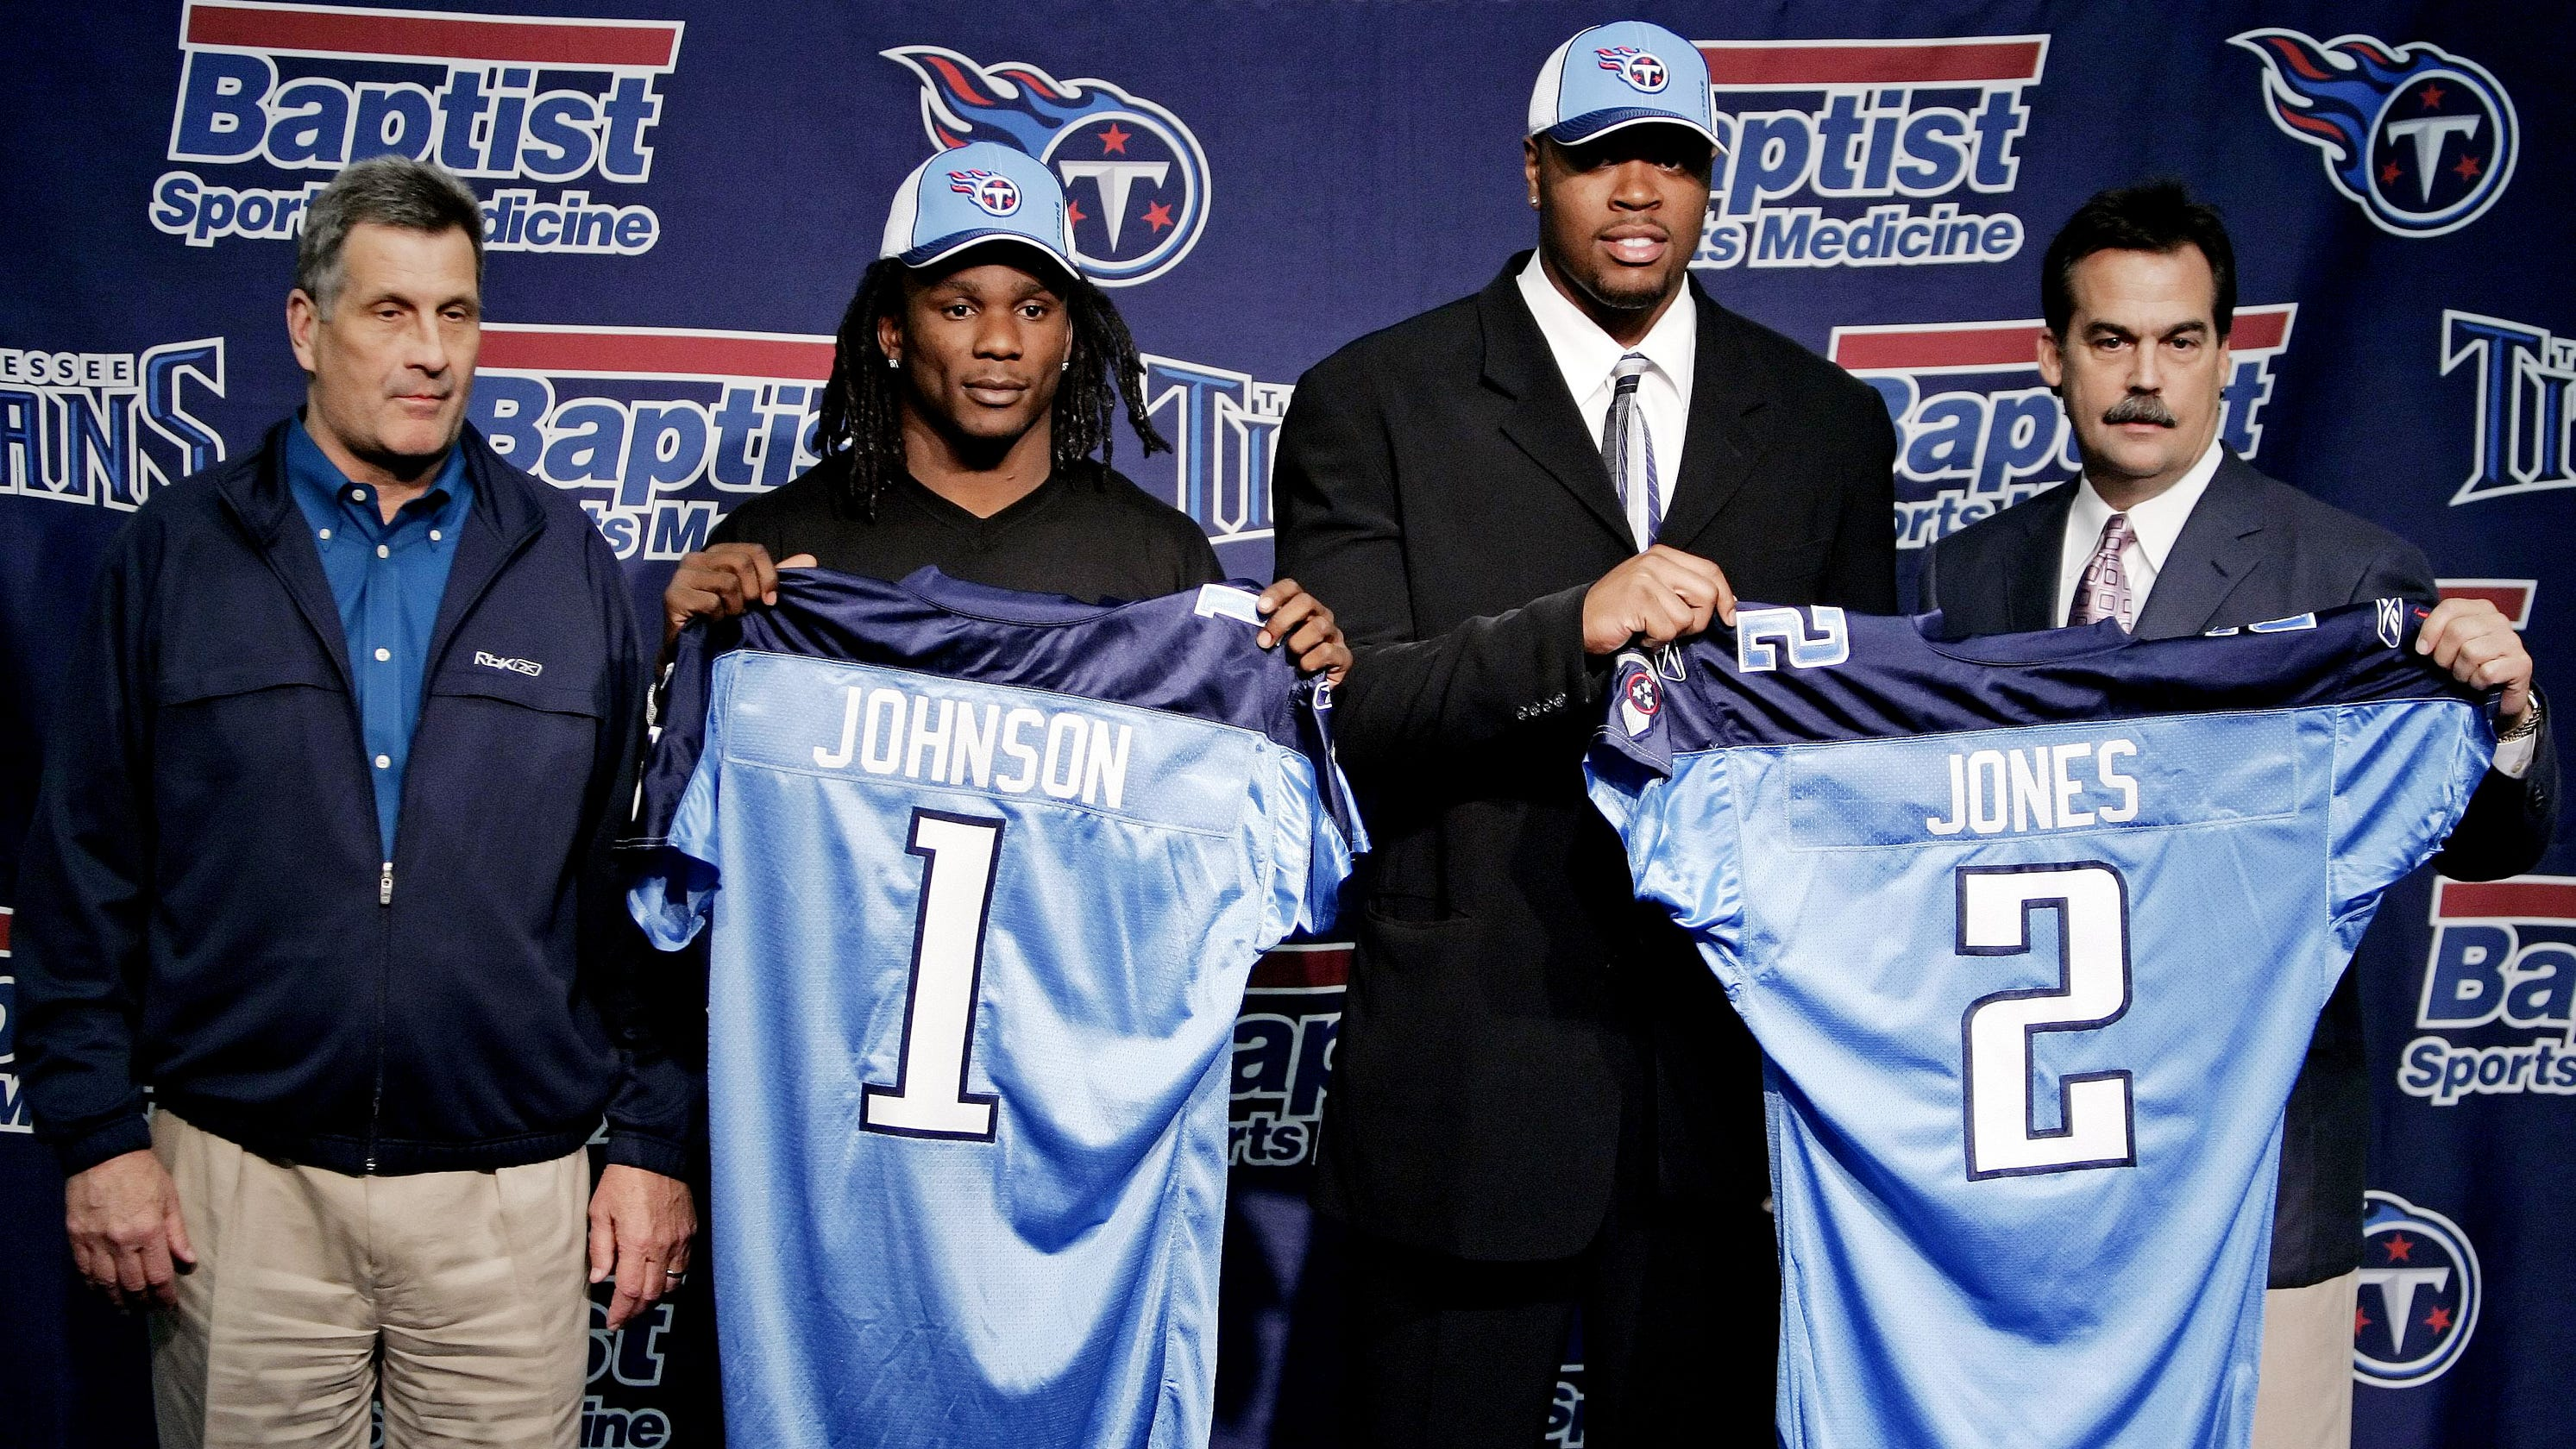 7910c413597d 2019 NFL draft  Ranking the 5 best and worst picks in Titans history